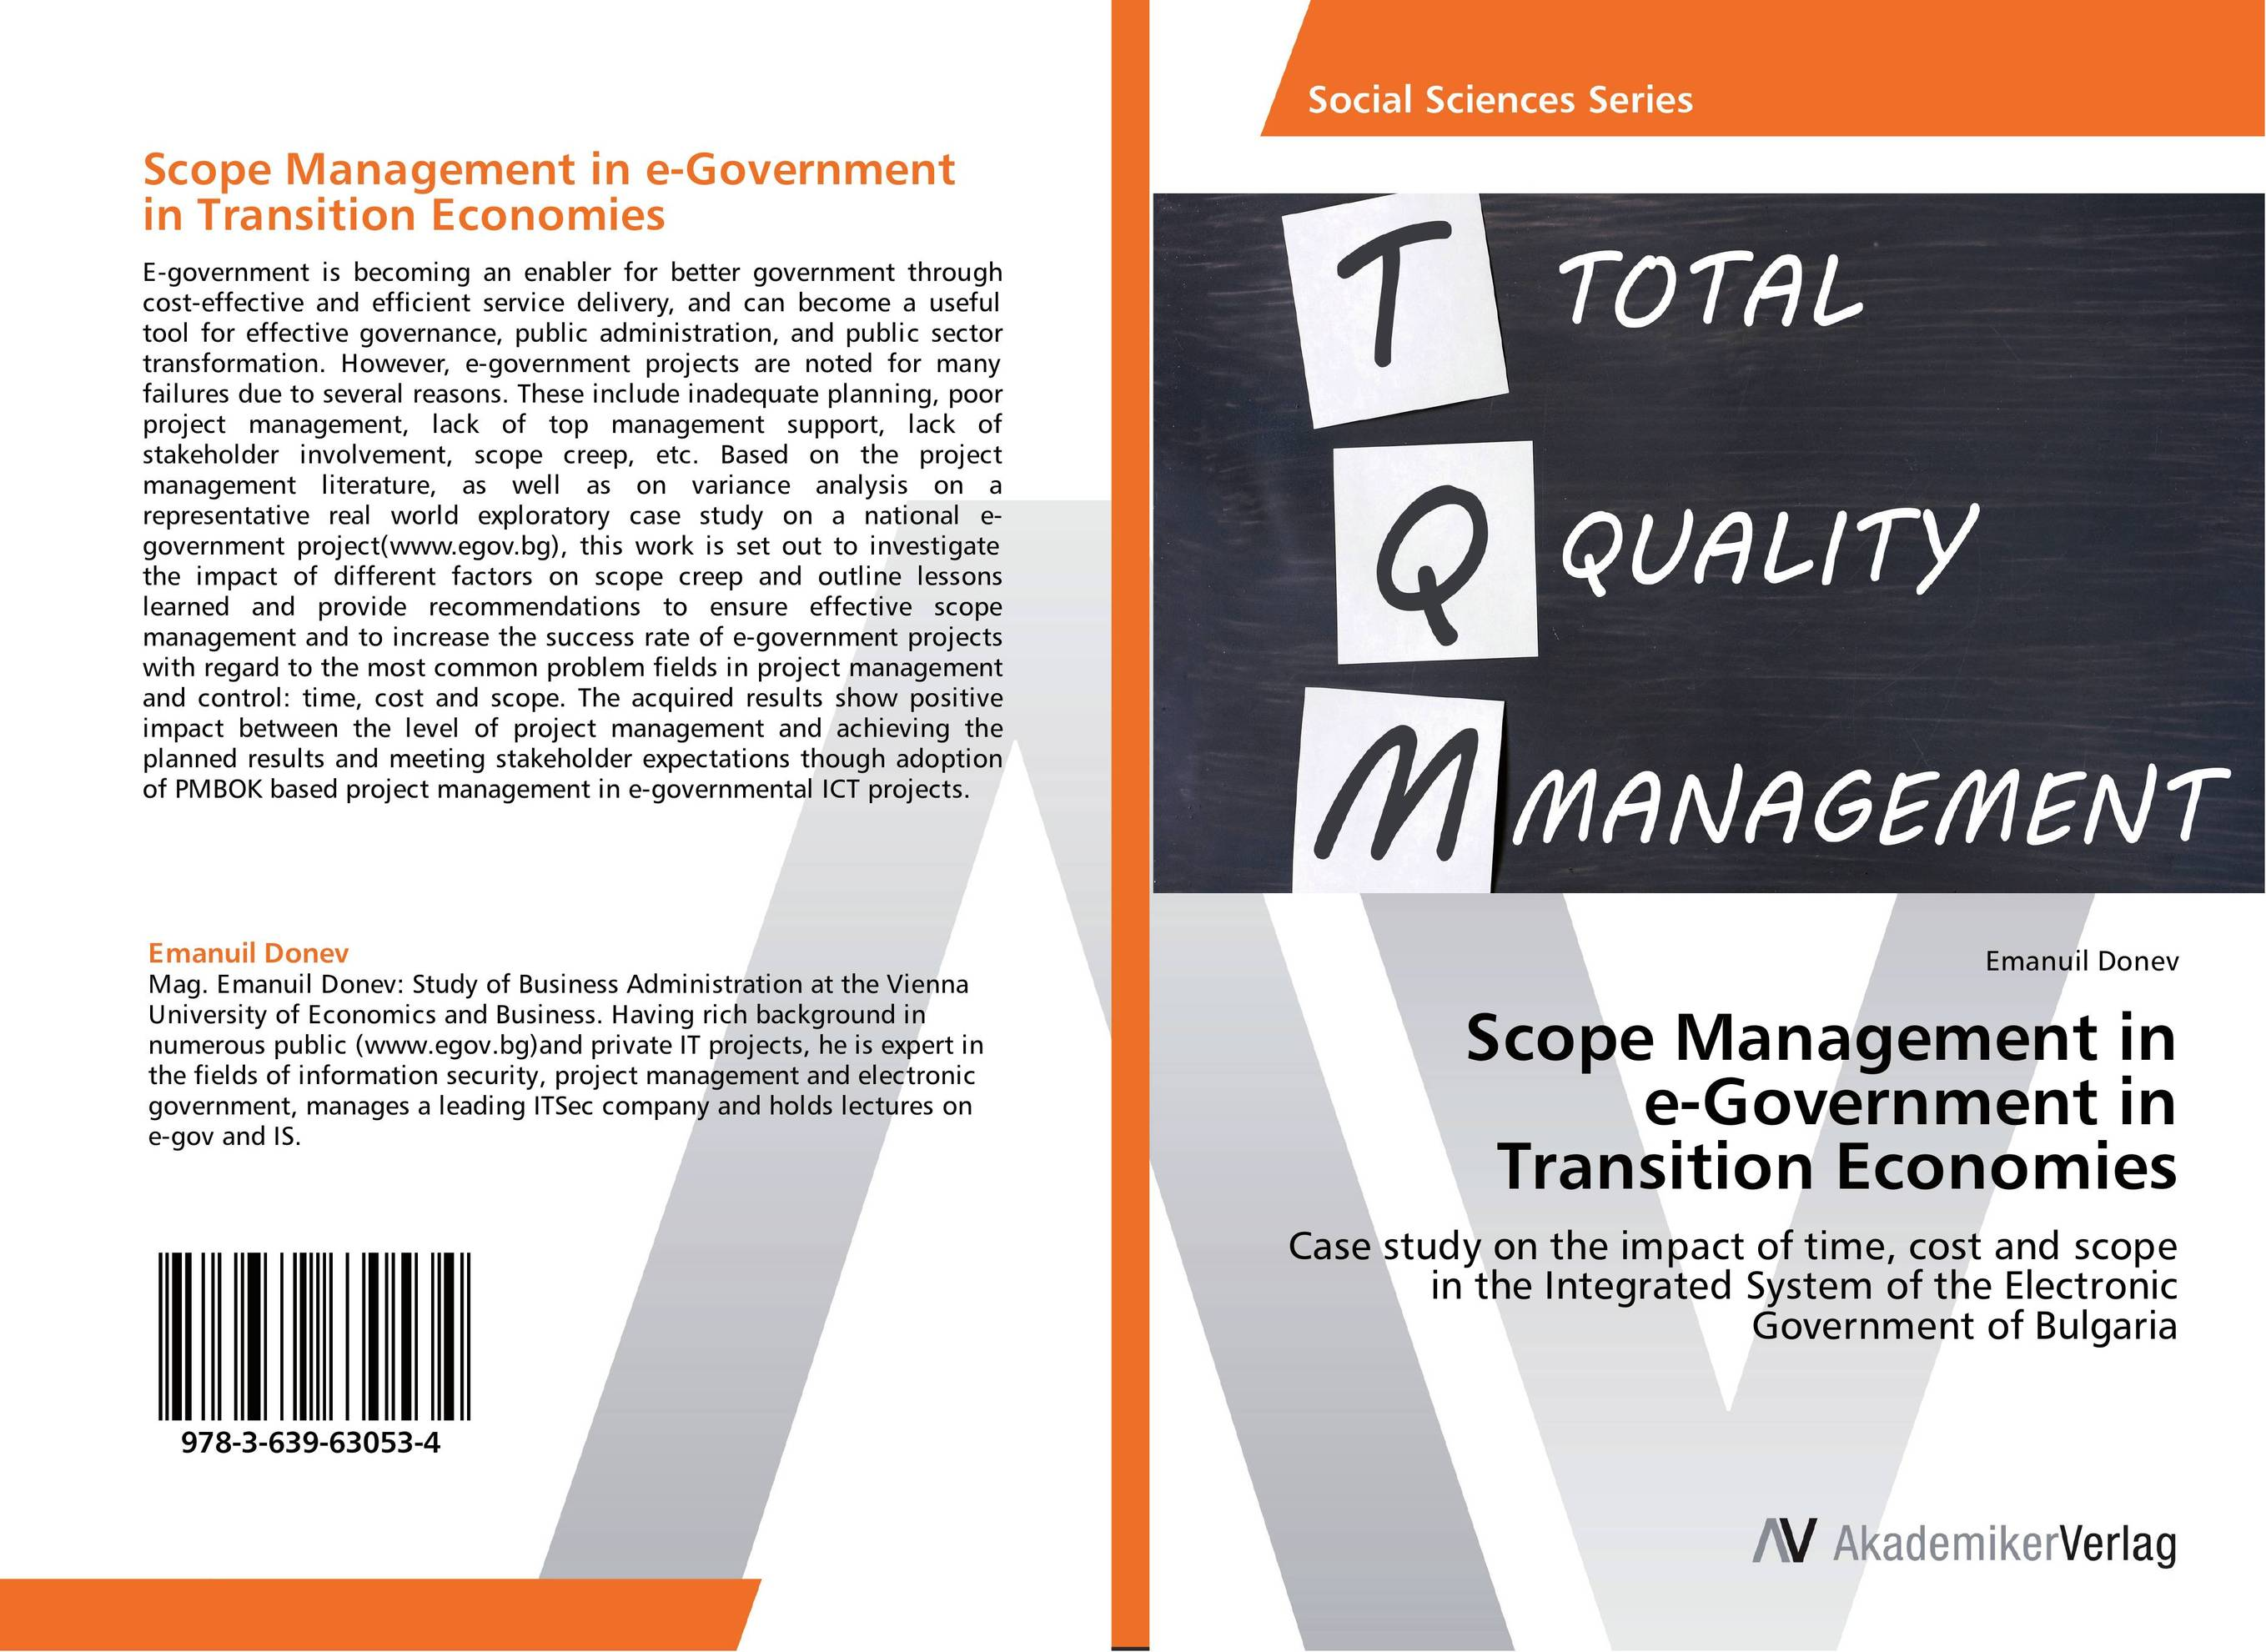 Scope Management in e-Government in Transition Economies michel chevalier luxury retail management how the world s top brands provide quality product and service support